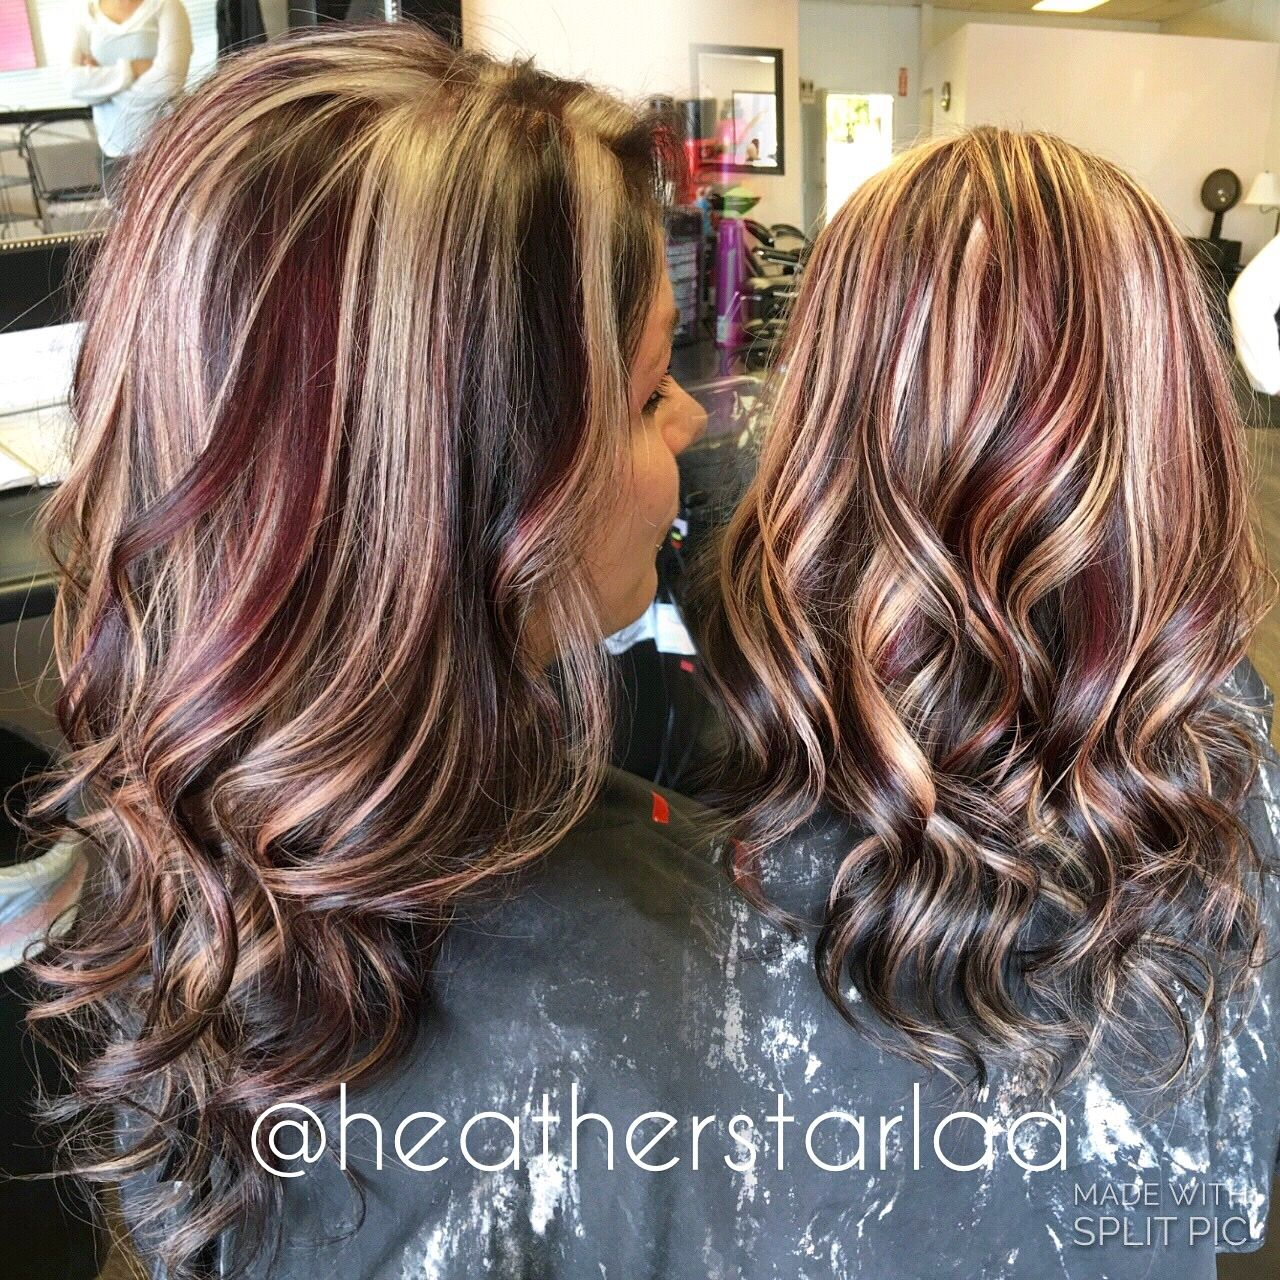 Brown Hair With Blond And Red Highlights Blonde Highlights And Red